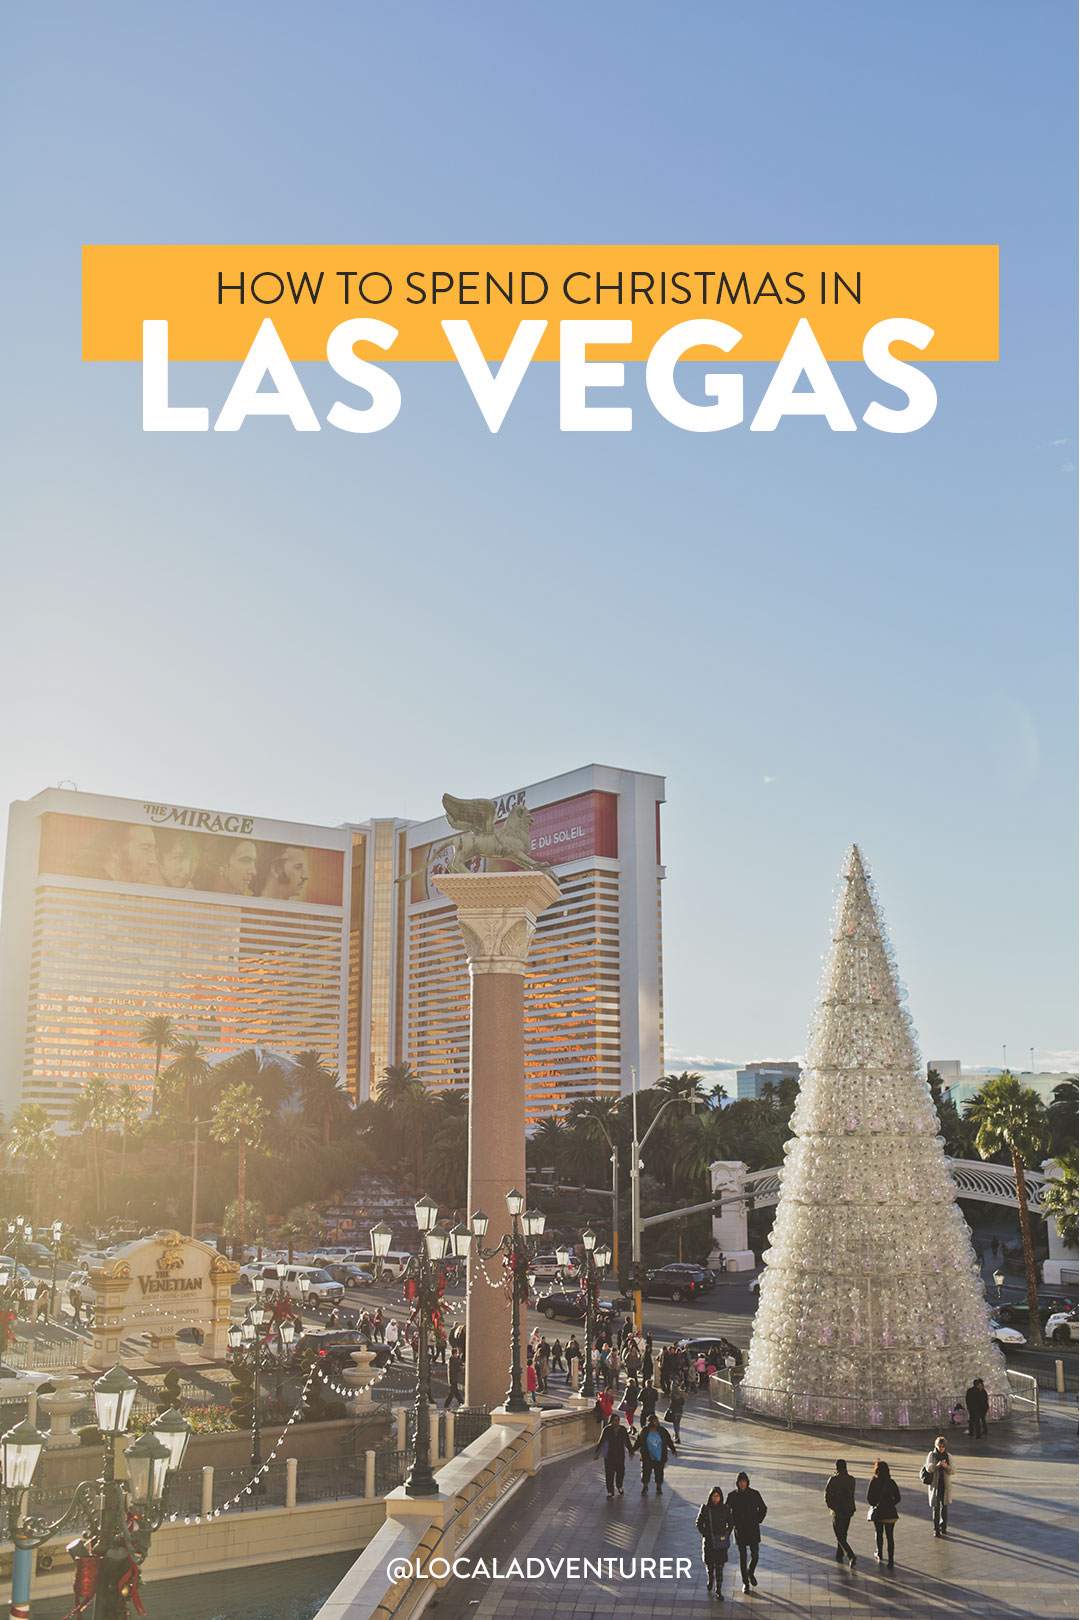 Christmas Events Local Las Vegas 2020 5 Ways to Have the Perfect Christmas in Las Vegas » Local Adventurer